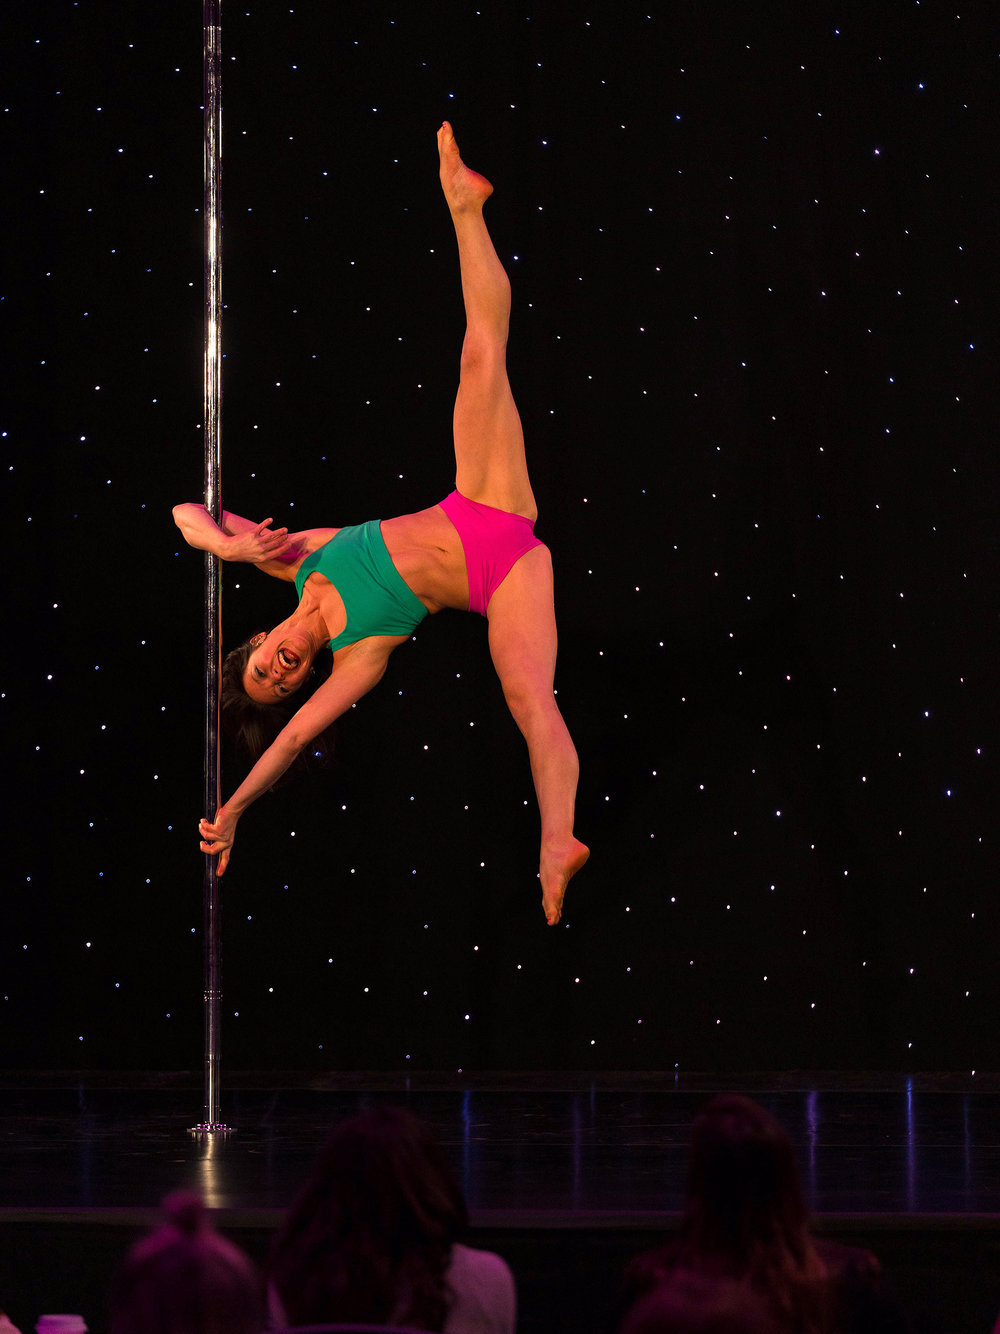 Jennifer, age 33, competing in pole fitness for the first time at the Arnold Sports Festival.